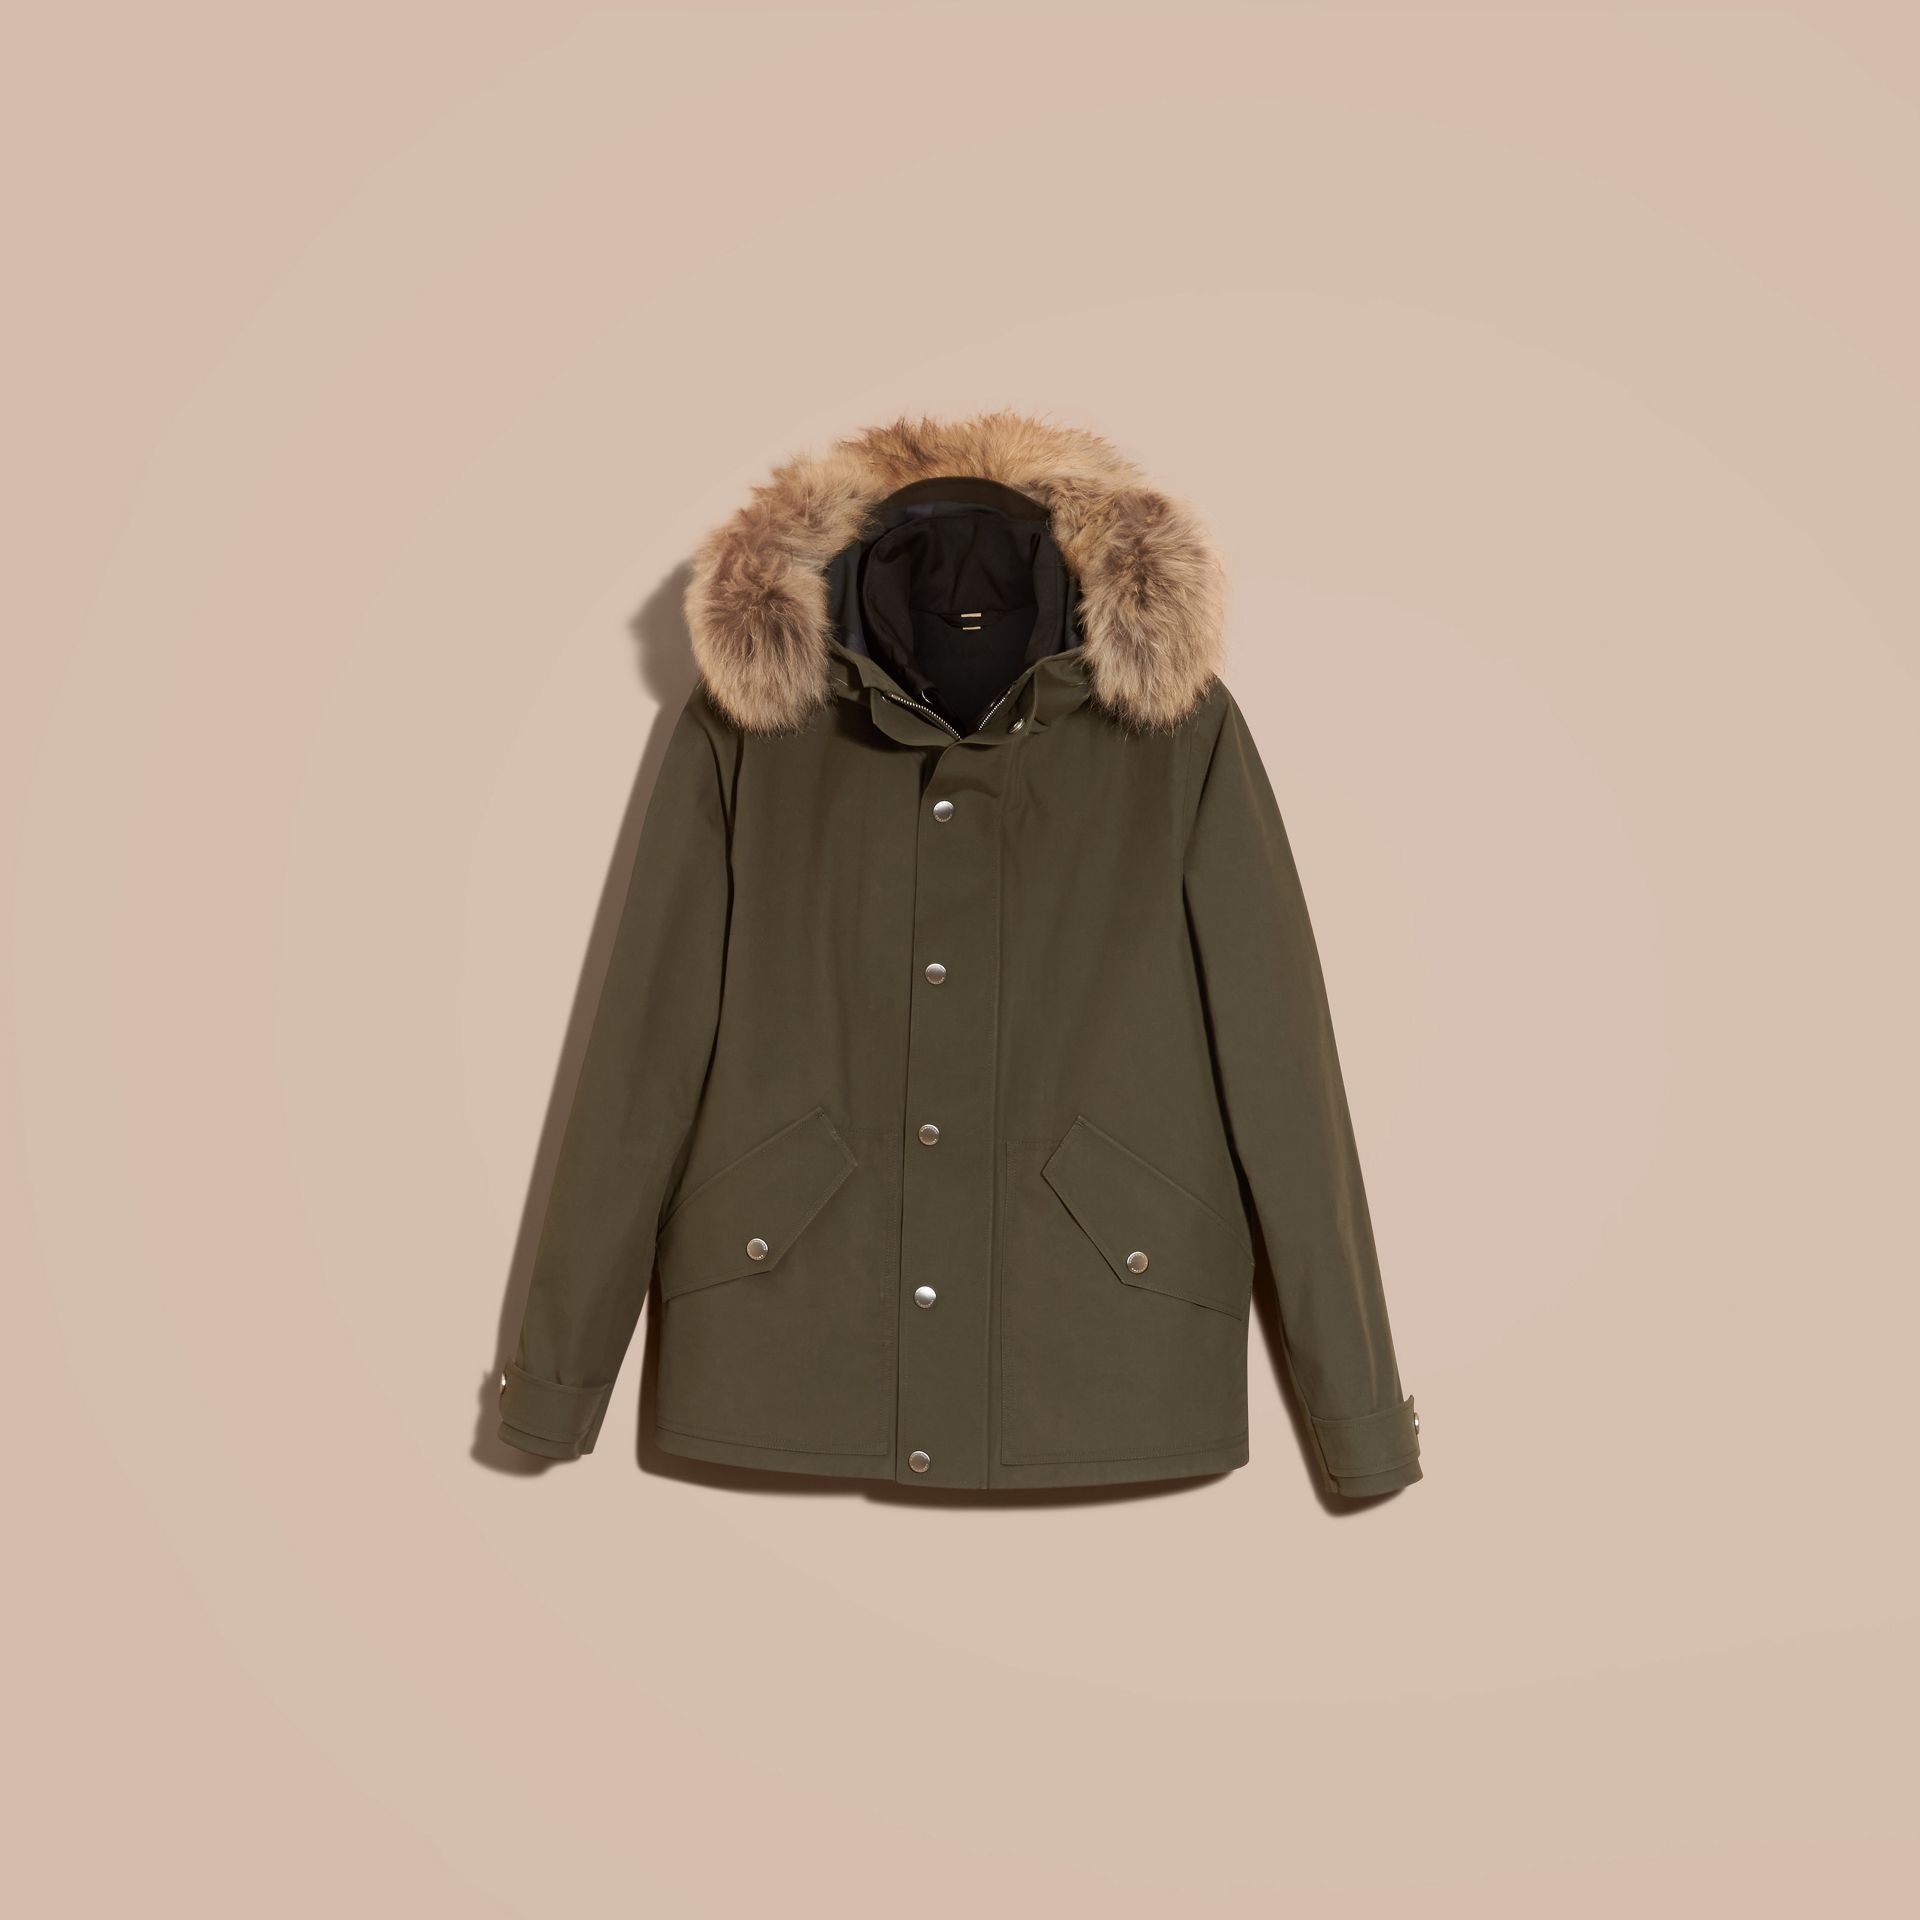 Dark olive Bonded Cotton Parka Coat with Down-filled Warmer - gallery image 3